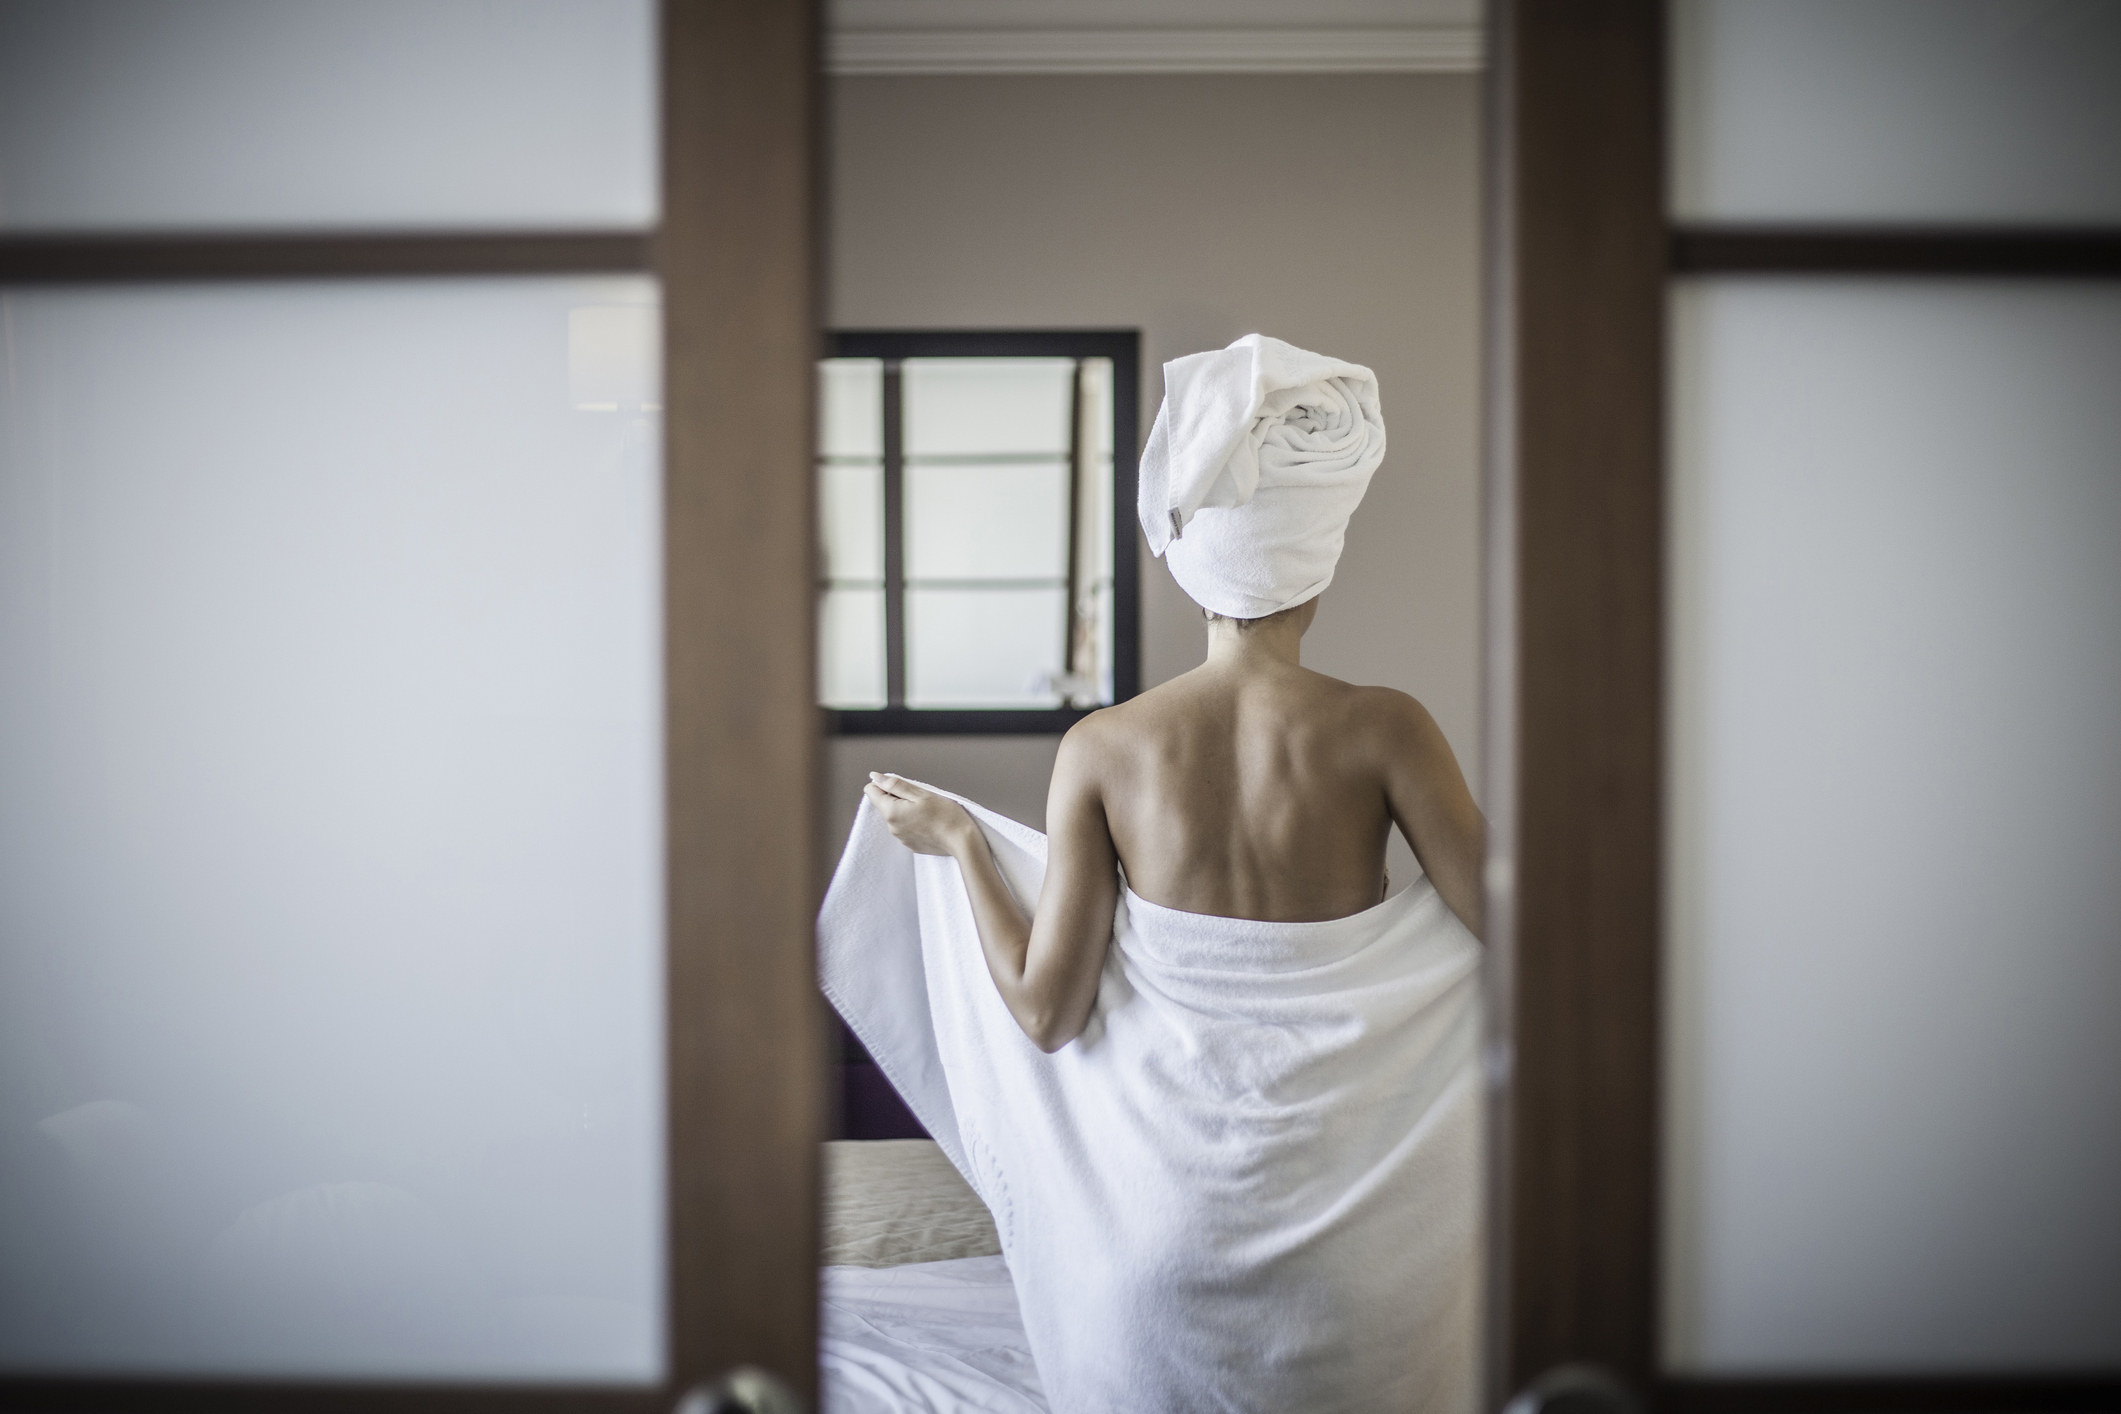 Reflection of someone in a full-length mirror closing a towel around them with a towel on their head